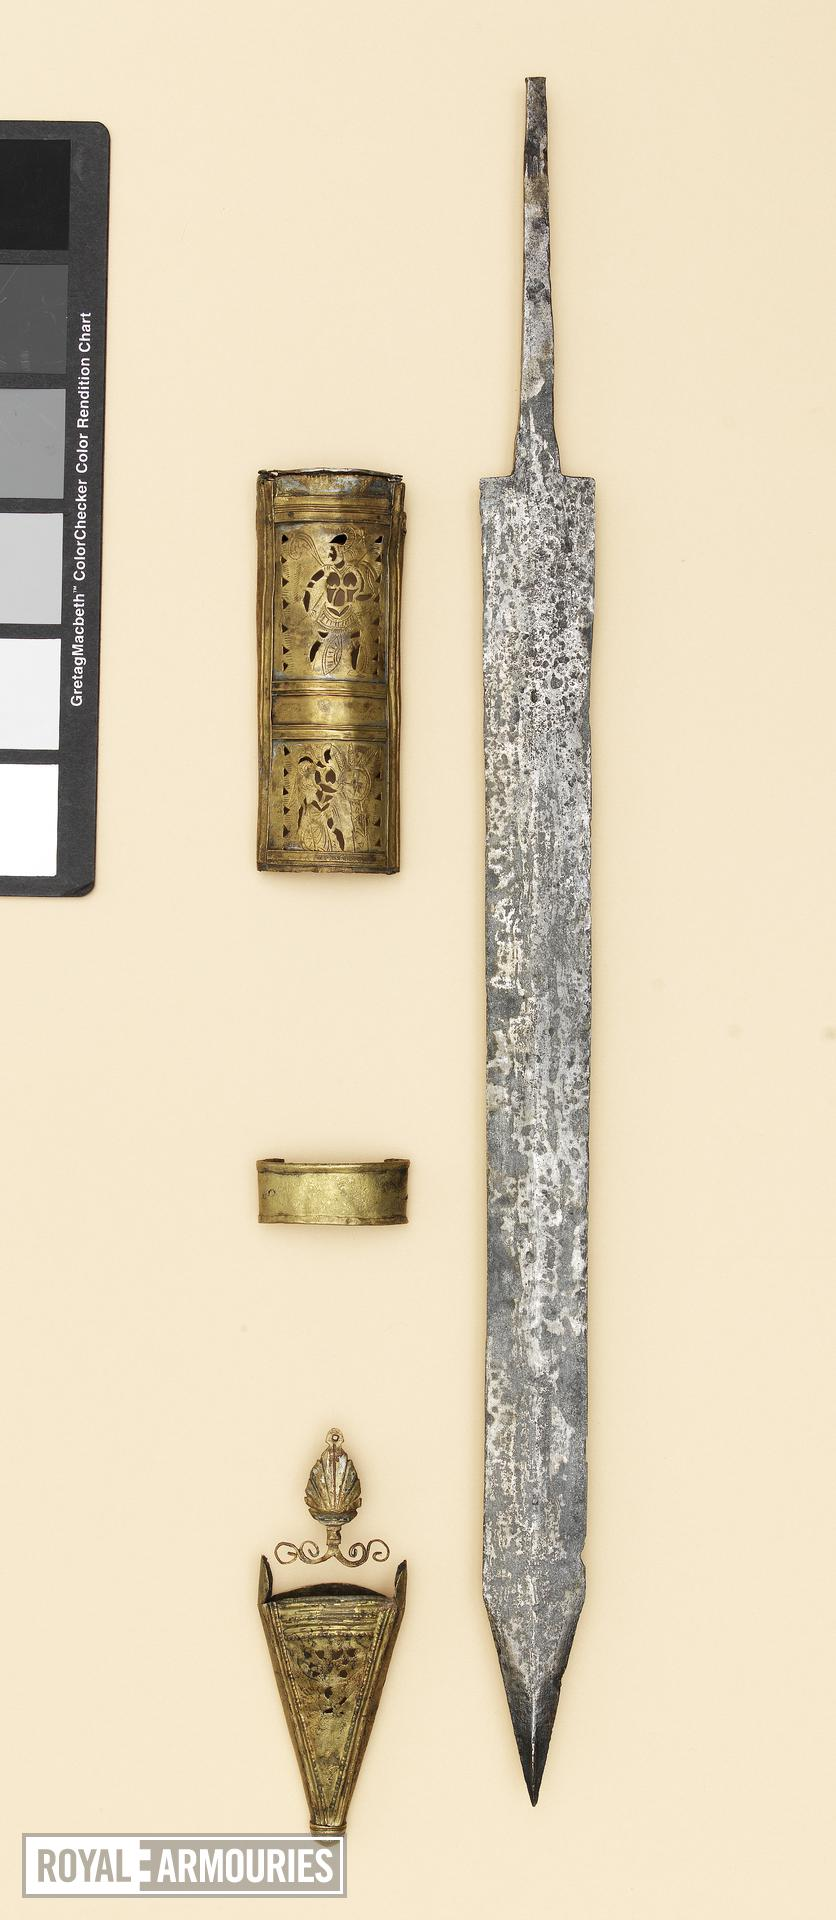 Blade Gladius blade of the 'Pompeii' type, from the Alex Guttmann collection.